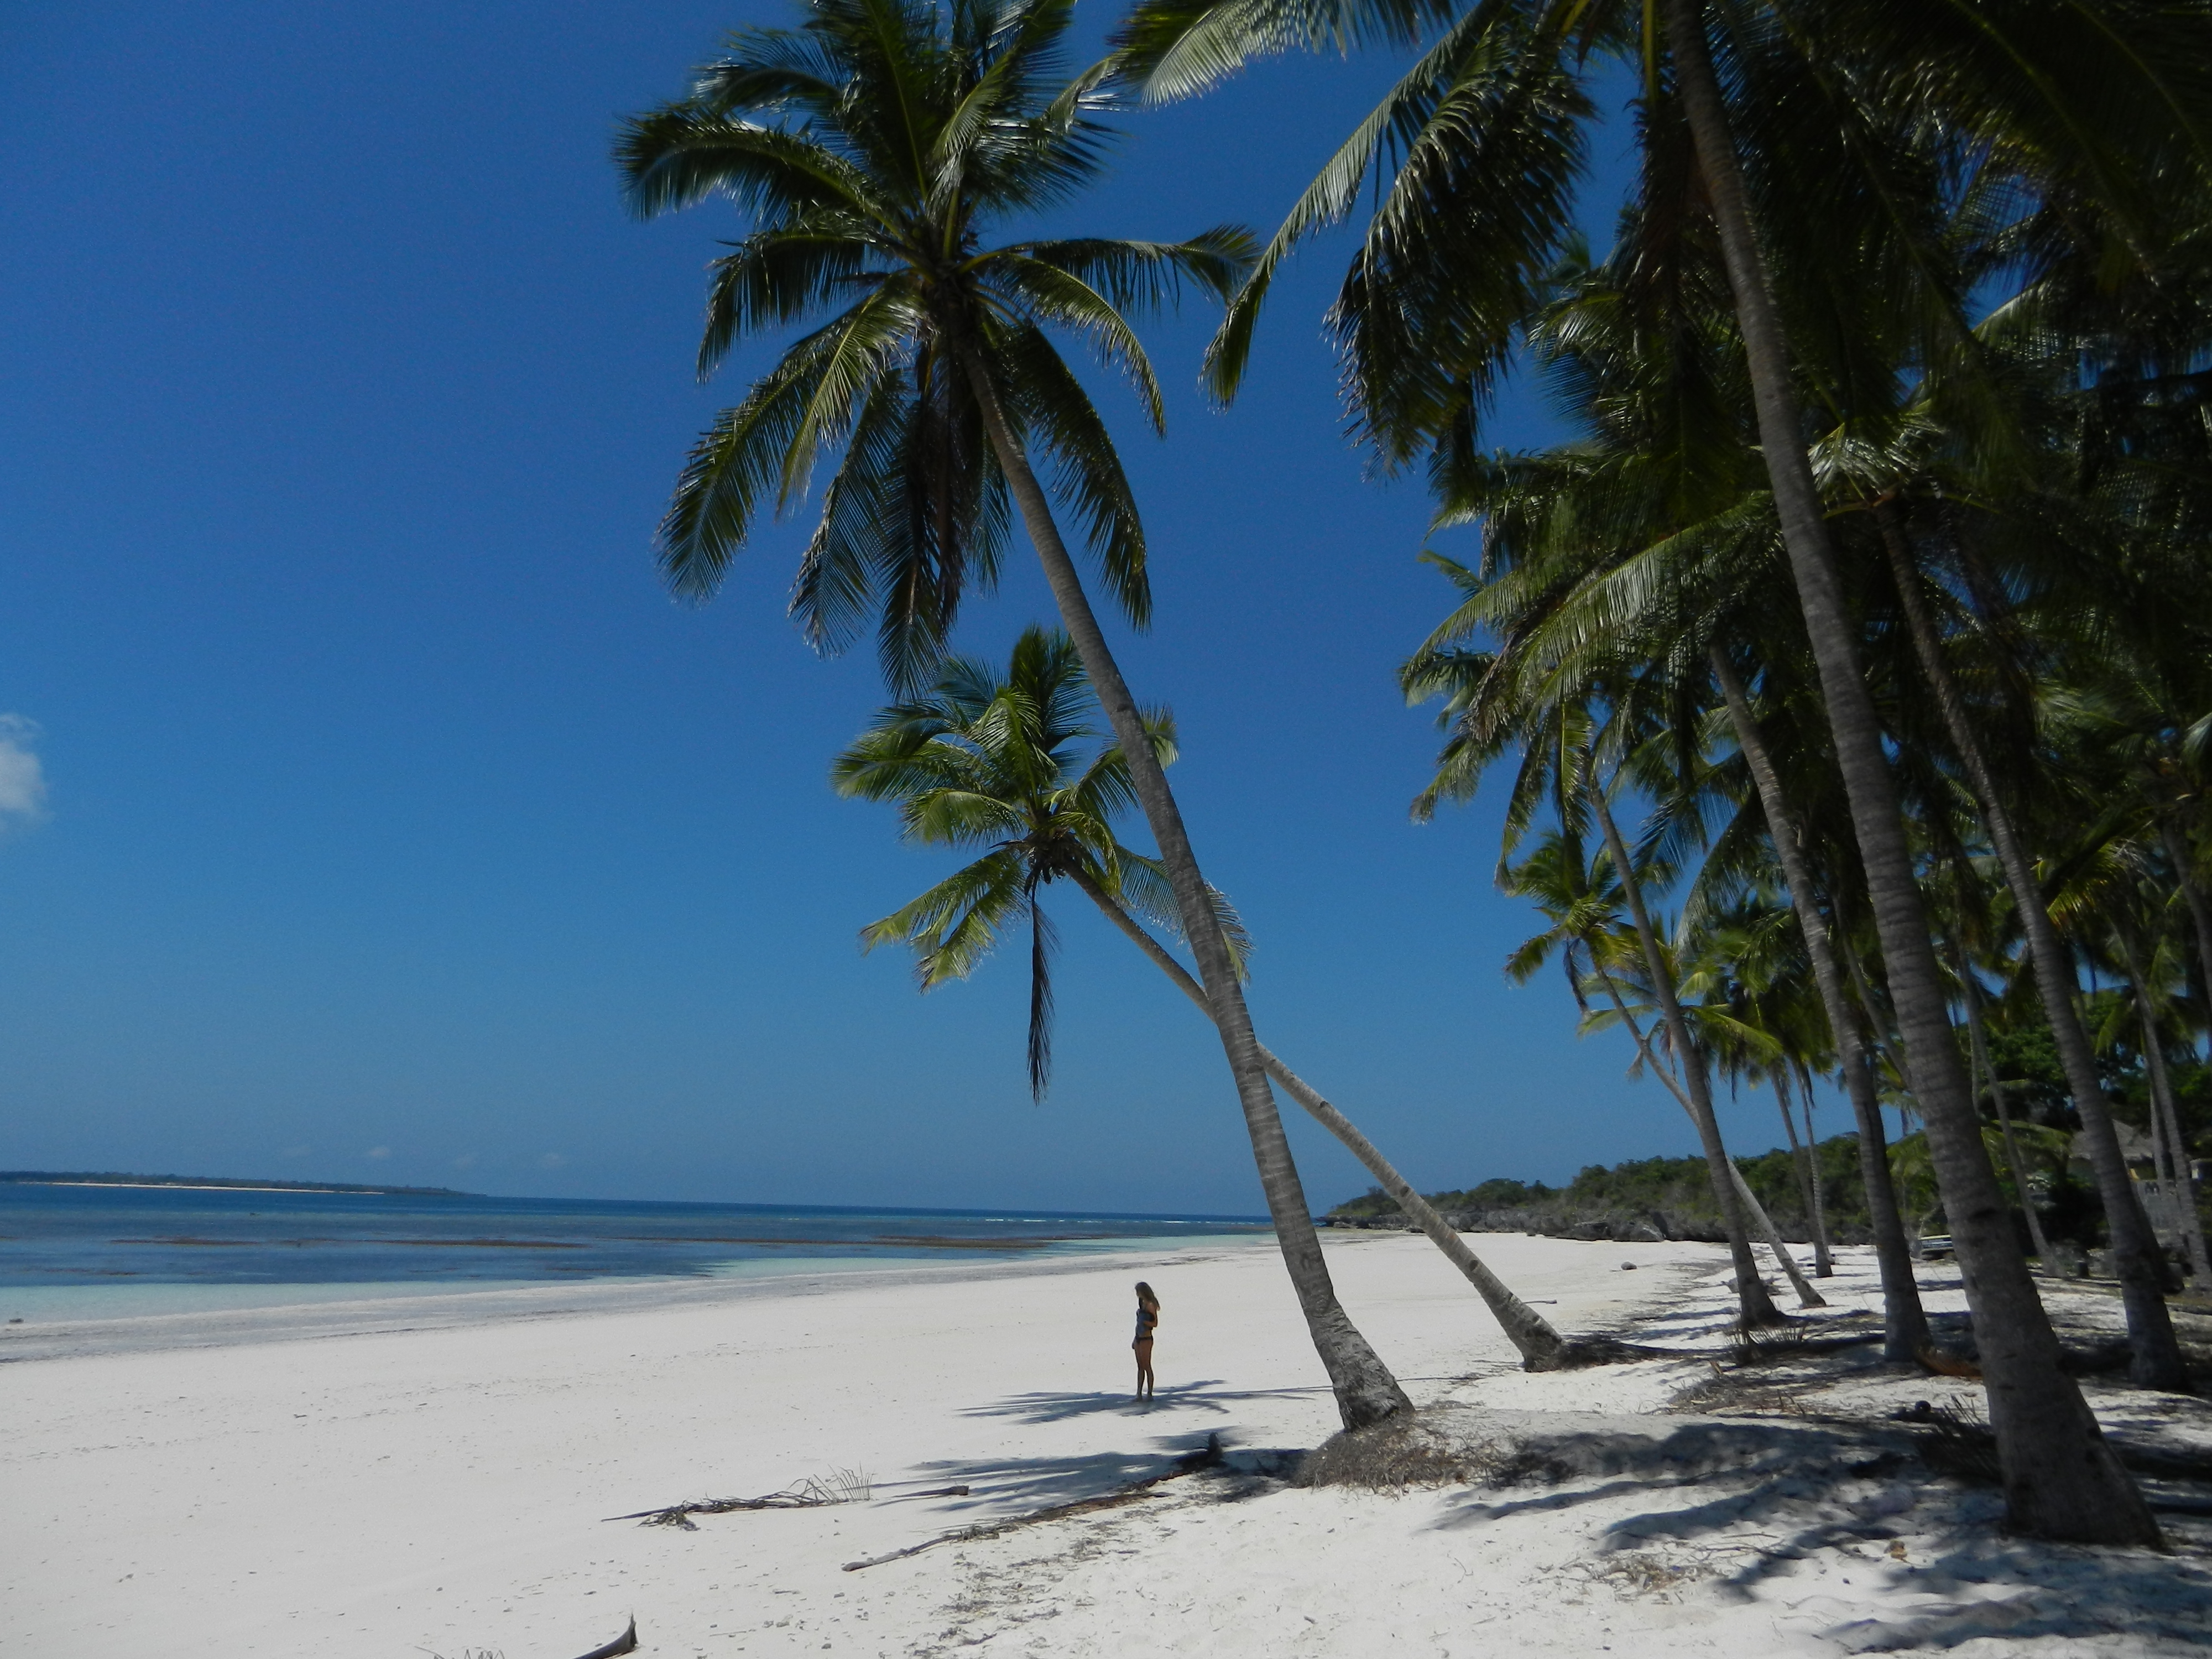 Traumstrand in Süd-Sulawesi